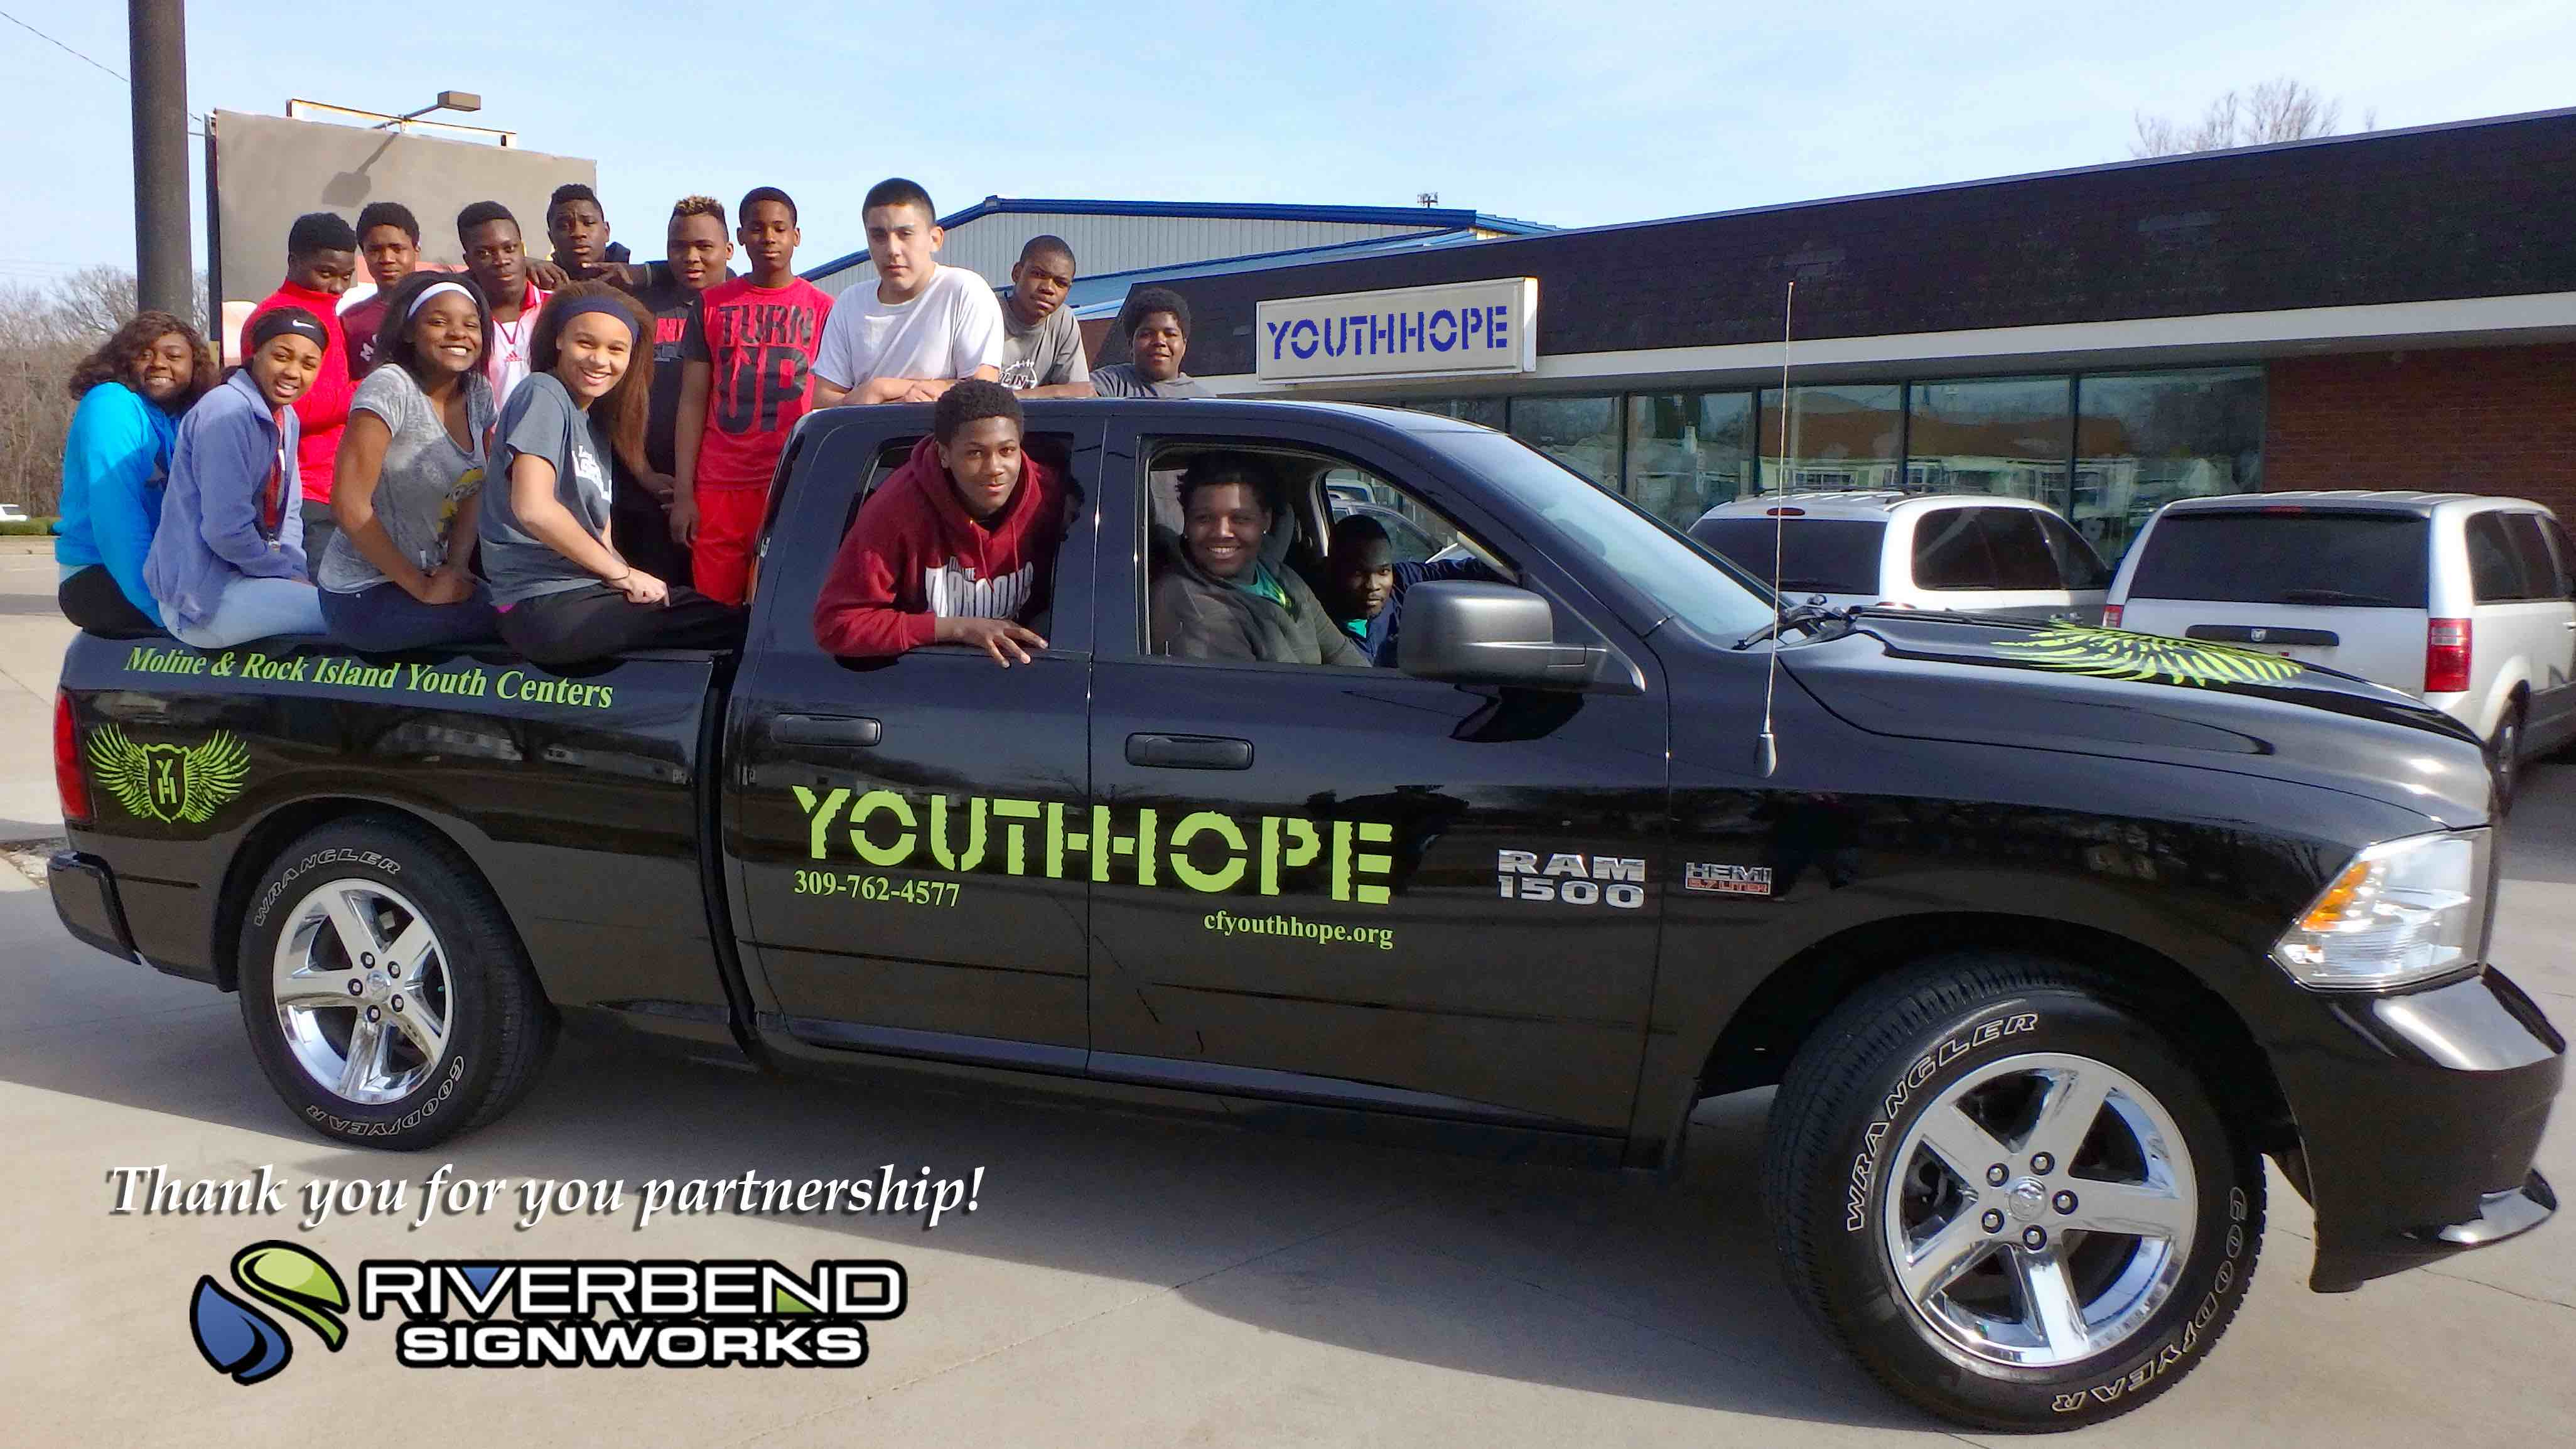 Truck Graphics and Lettering for YouthHope in Moline, Illinois